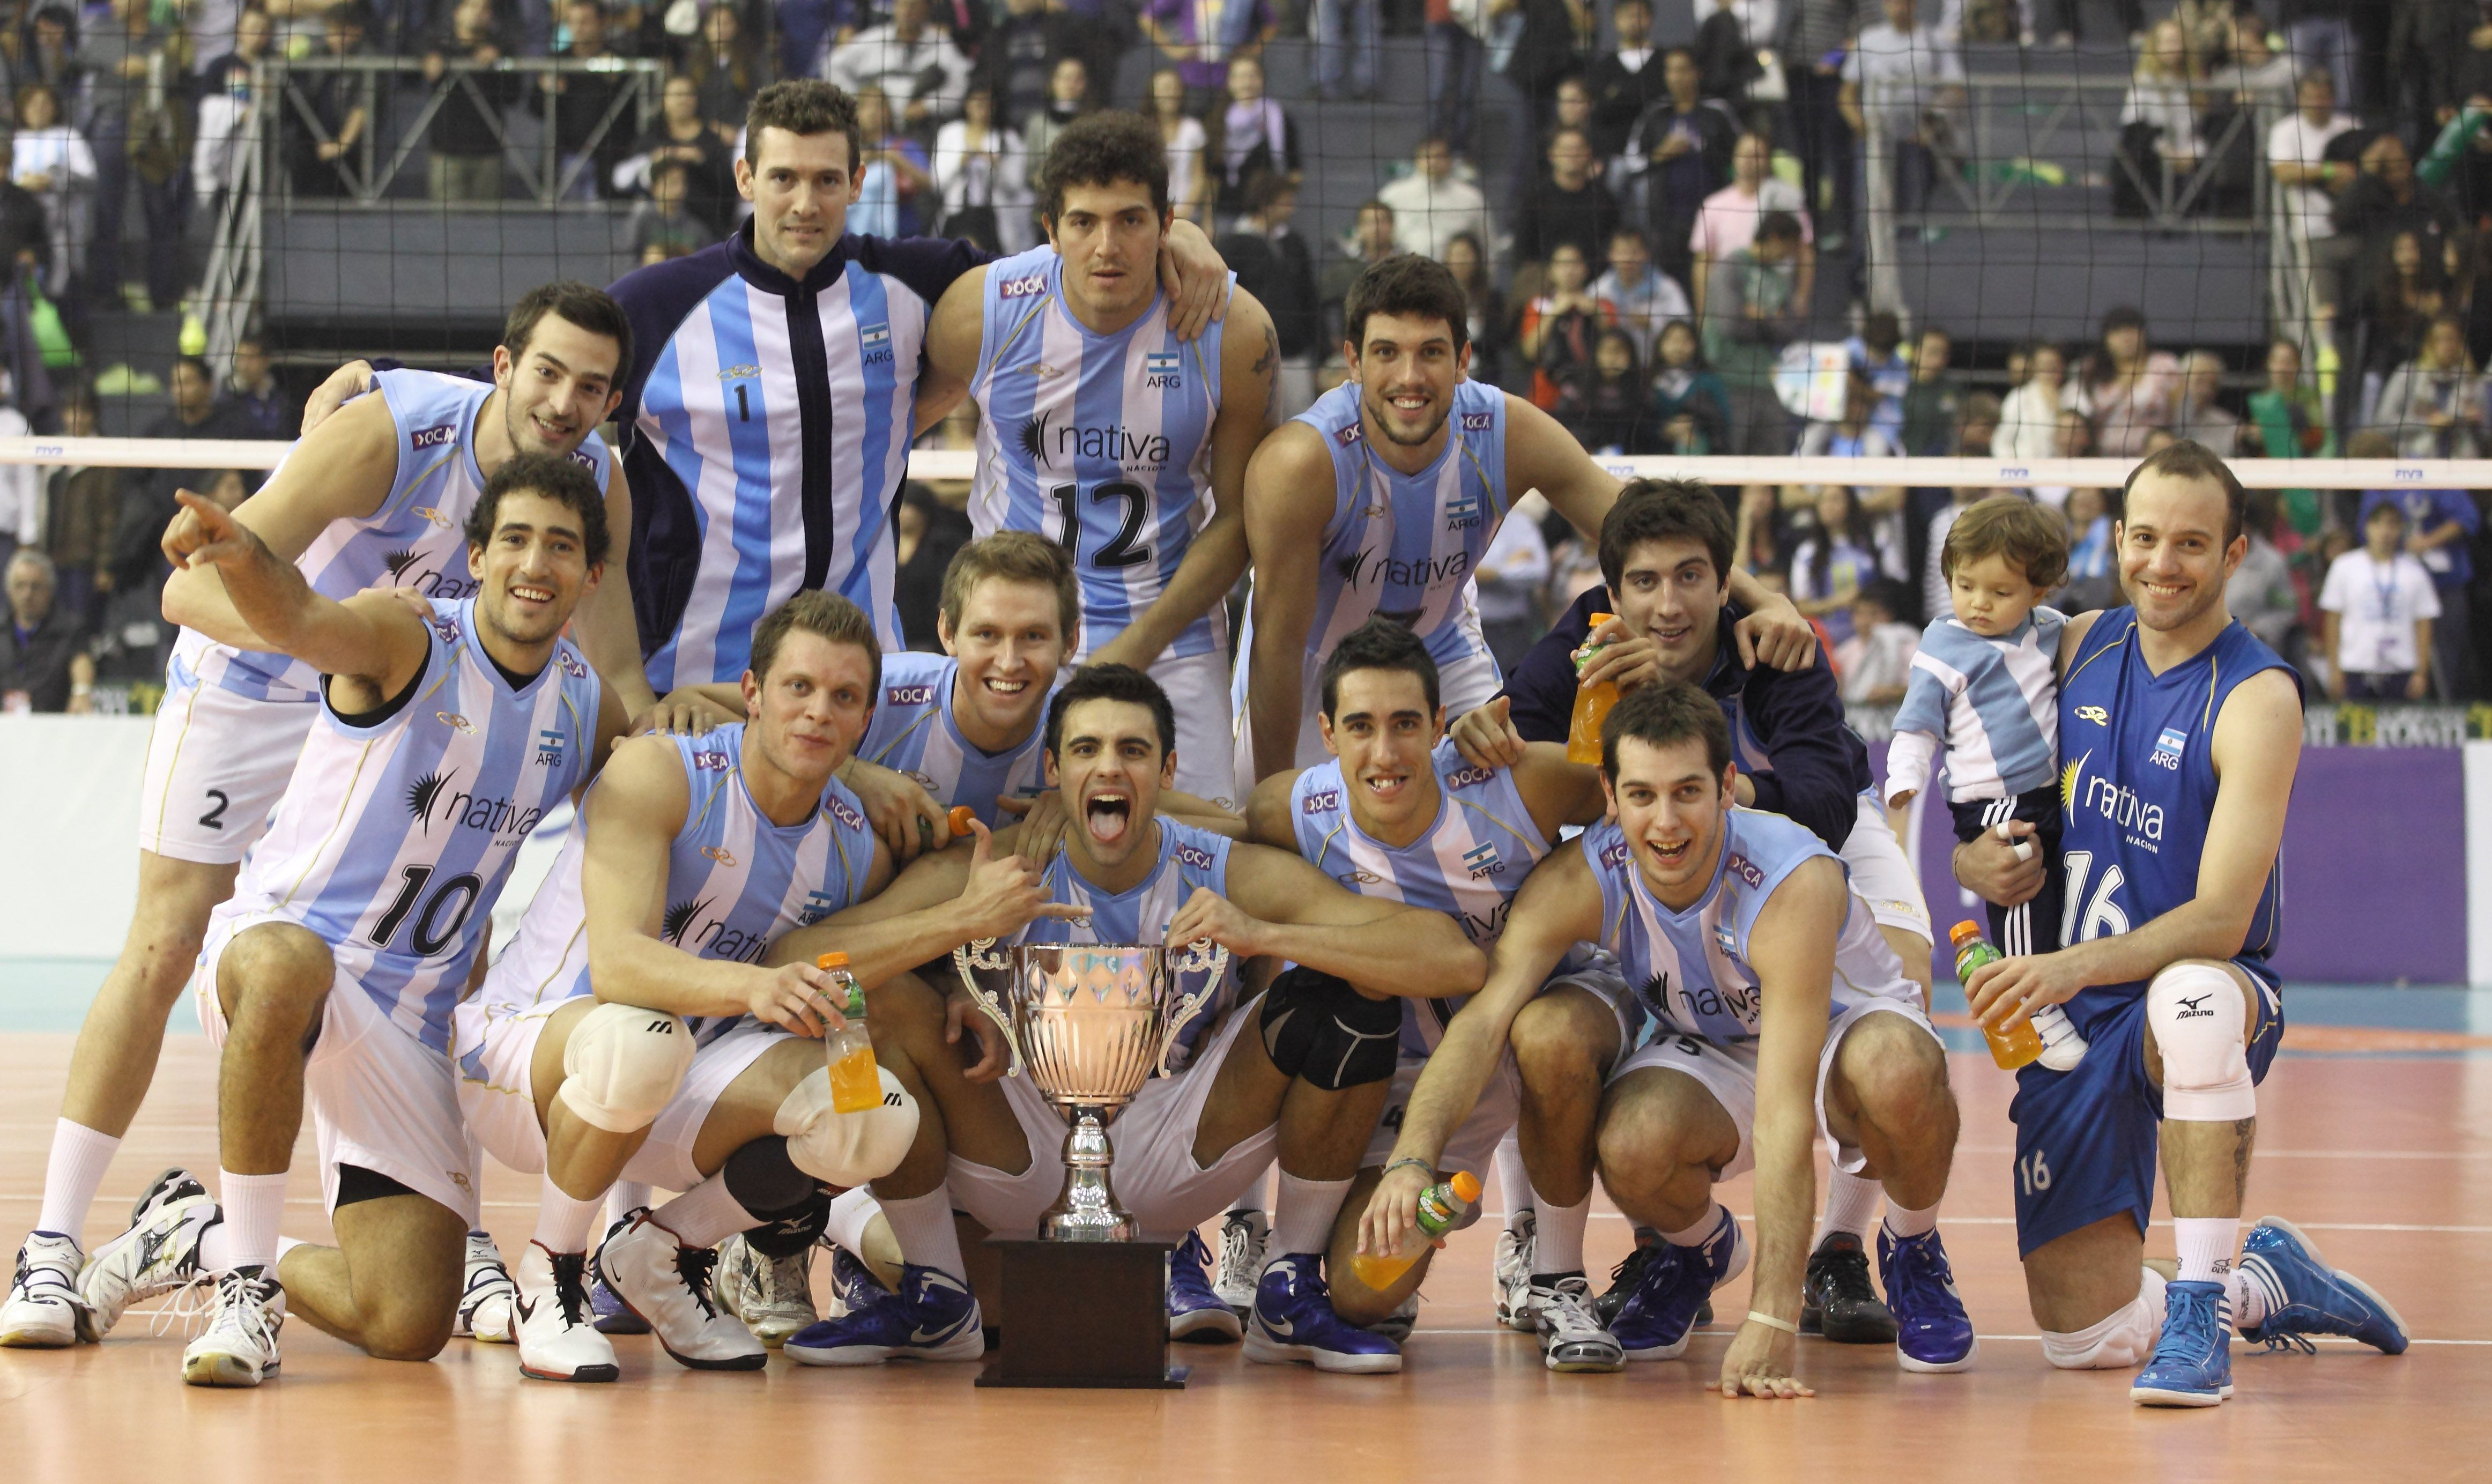 Men S Volleyball News 2012 South American Olympic Qualification Tournament Videos Pictures Teams Volleyball Live Olympic Volleyball Volleyball